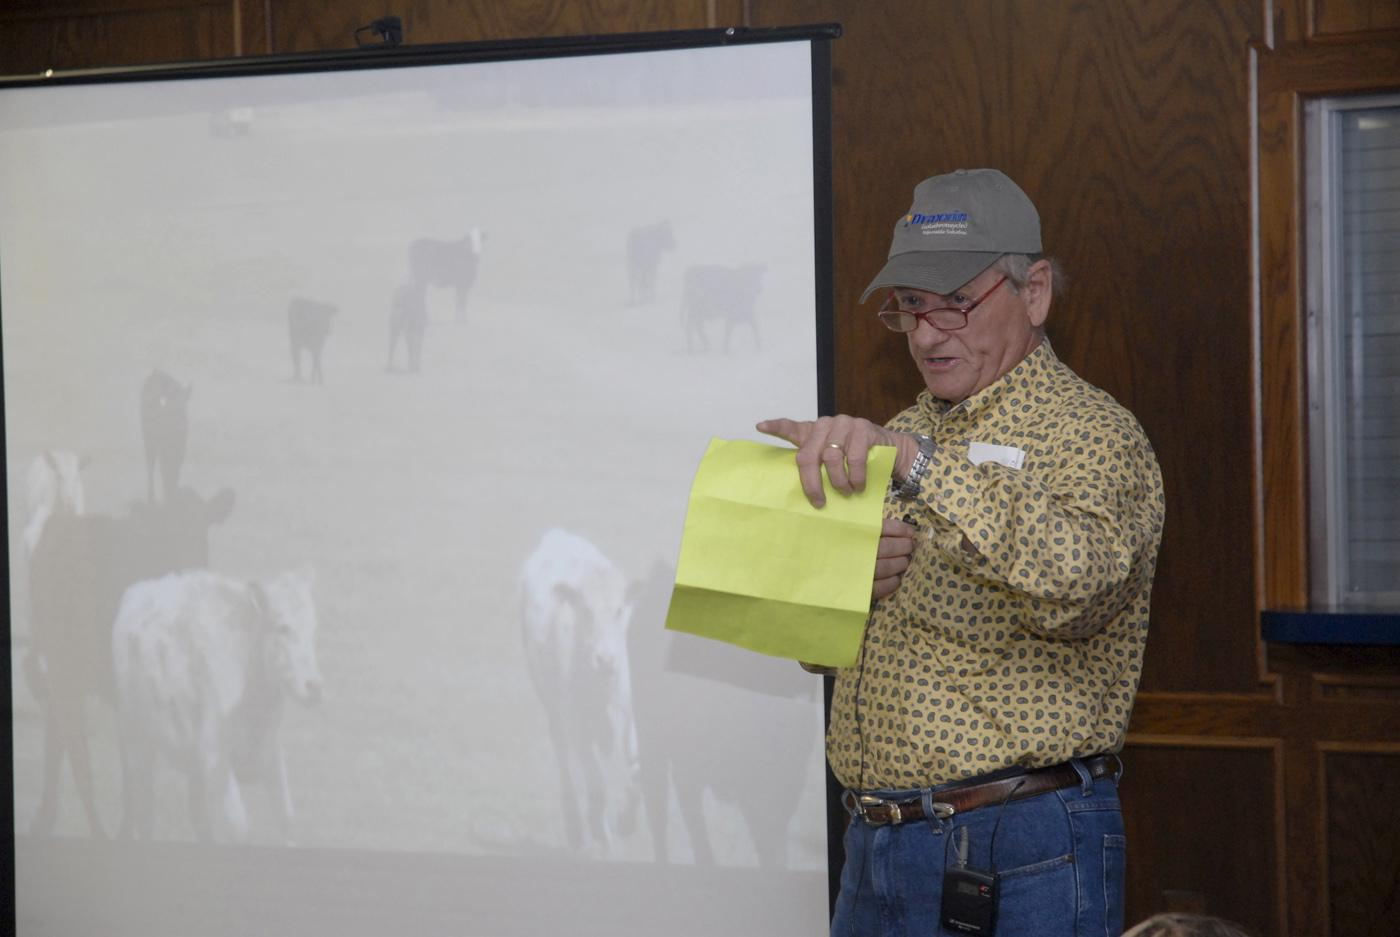 Ray Welch, owner of Winona Stockyards, serves as the auctioneer for the Cattlemen's Exchange and Homeplace Producer Sale held in April. Buyers see video segments and read descriptions of cattle lots as they bid on the animals. More than 2,000 cattle were sold in less than an hour with total receipts approaching $1.9 million. (Photo by Linda Breazeale)